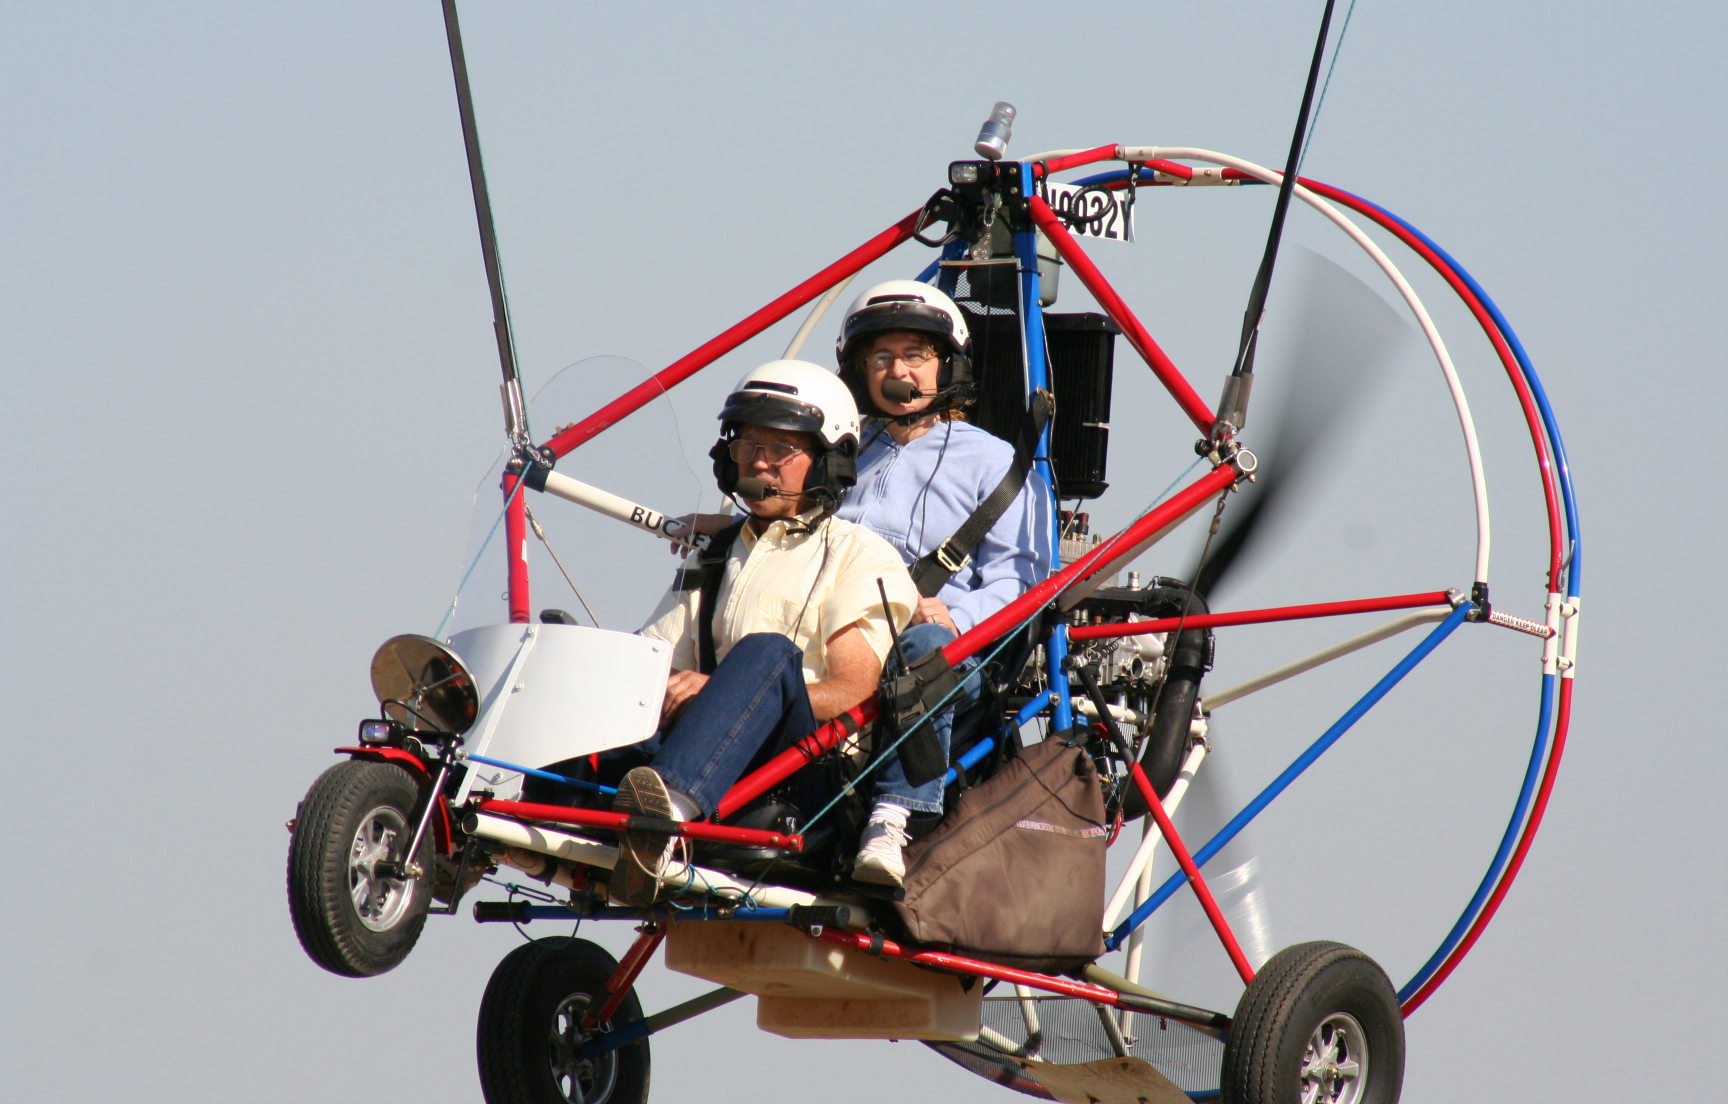 Cottonwood, AZ  -June 6-7, 2020 – REPAIRMAN INSPECTION  Powered Parachute